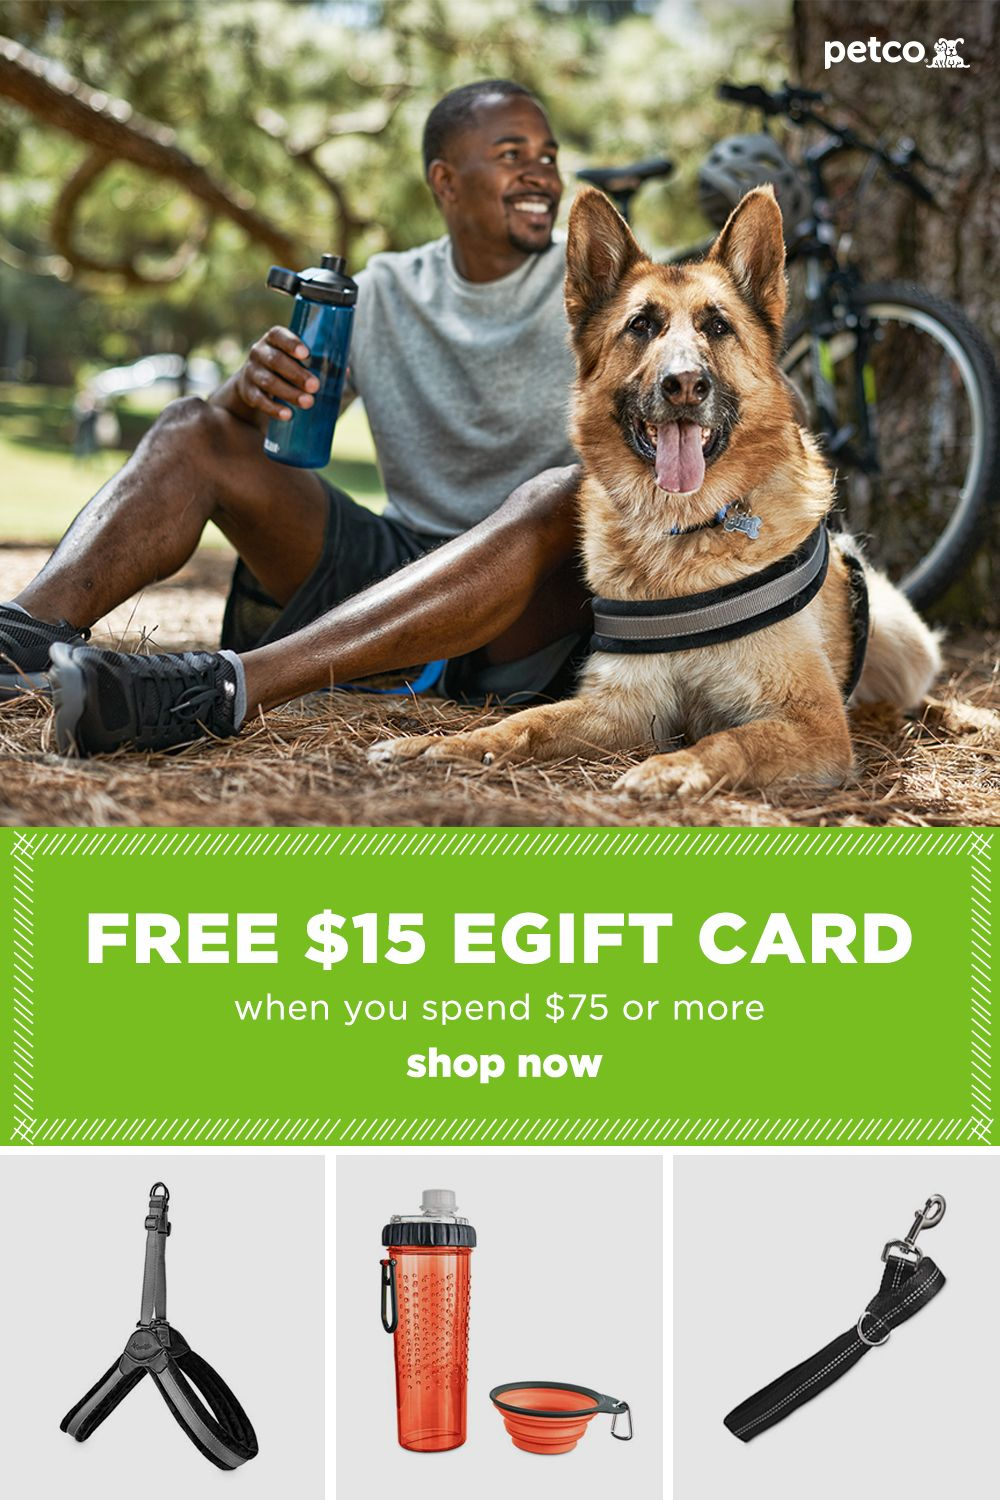 Get A 15 Free Egift Card When You Spend 75 Or More Today Shop Petco Today And Save Big Petco Discount Pet Supplies Reptiles Pet